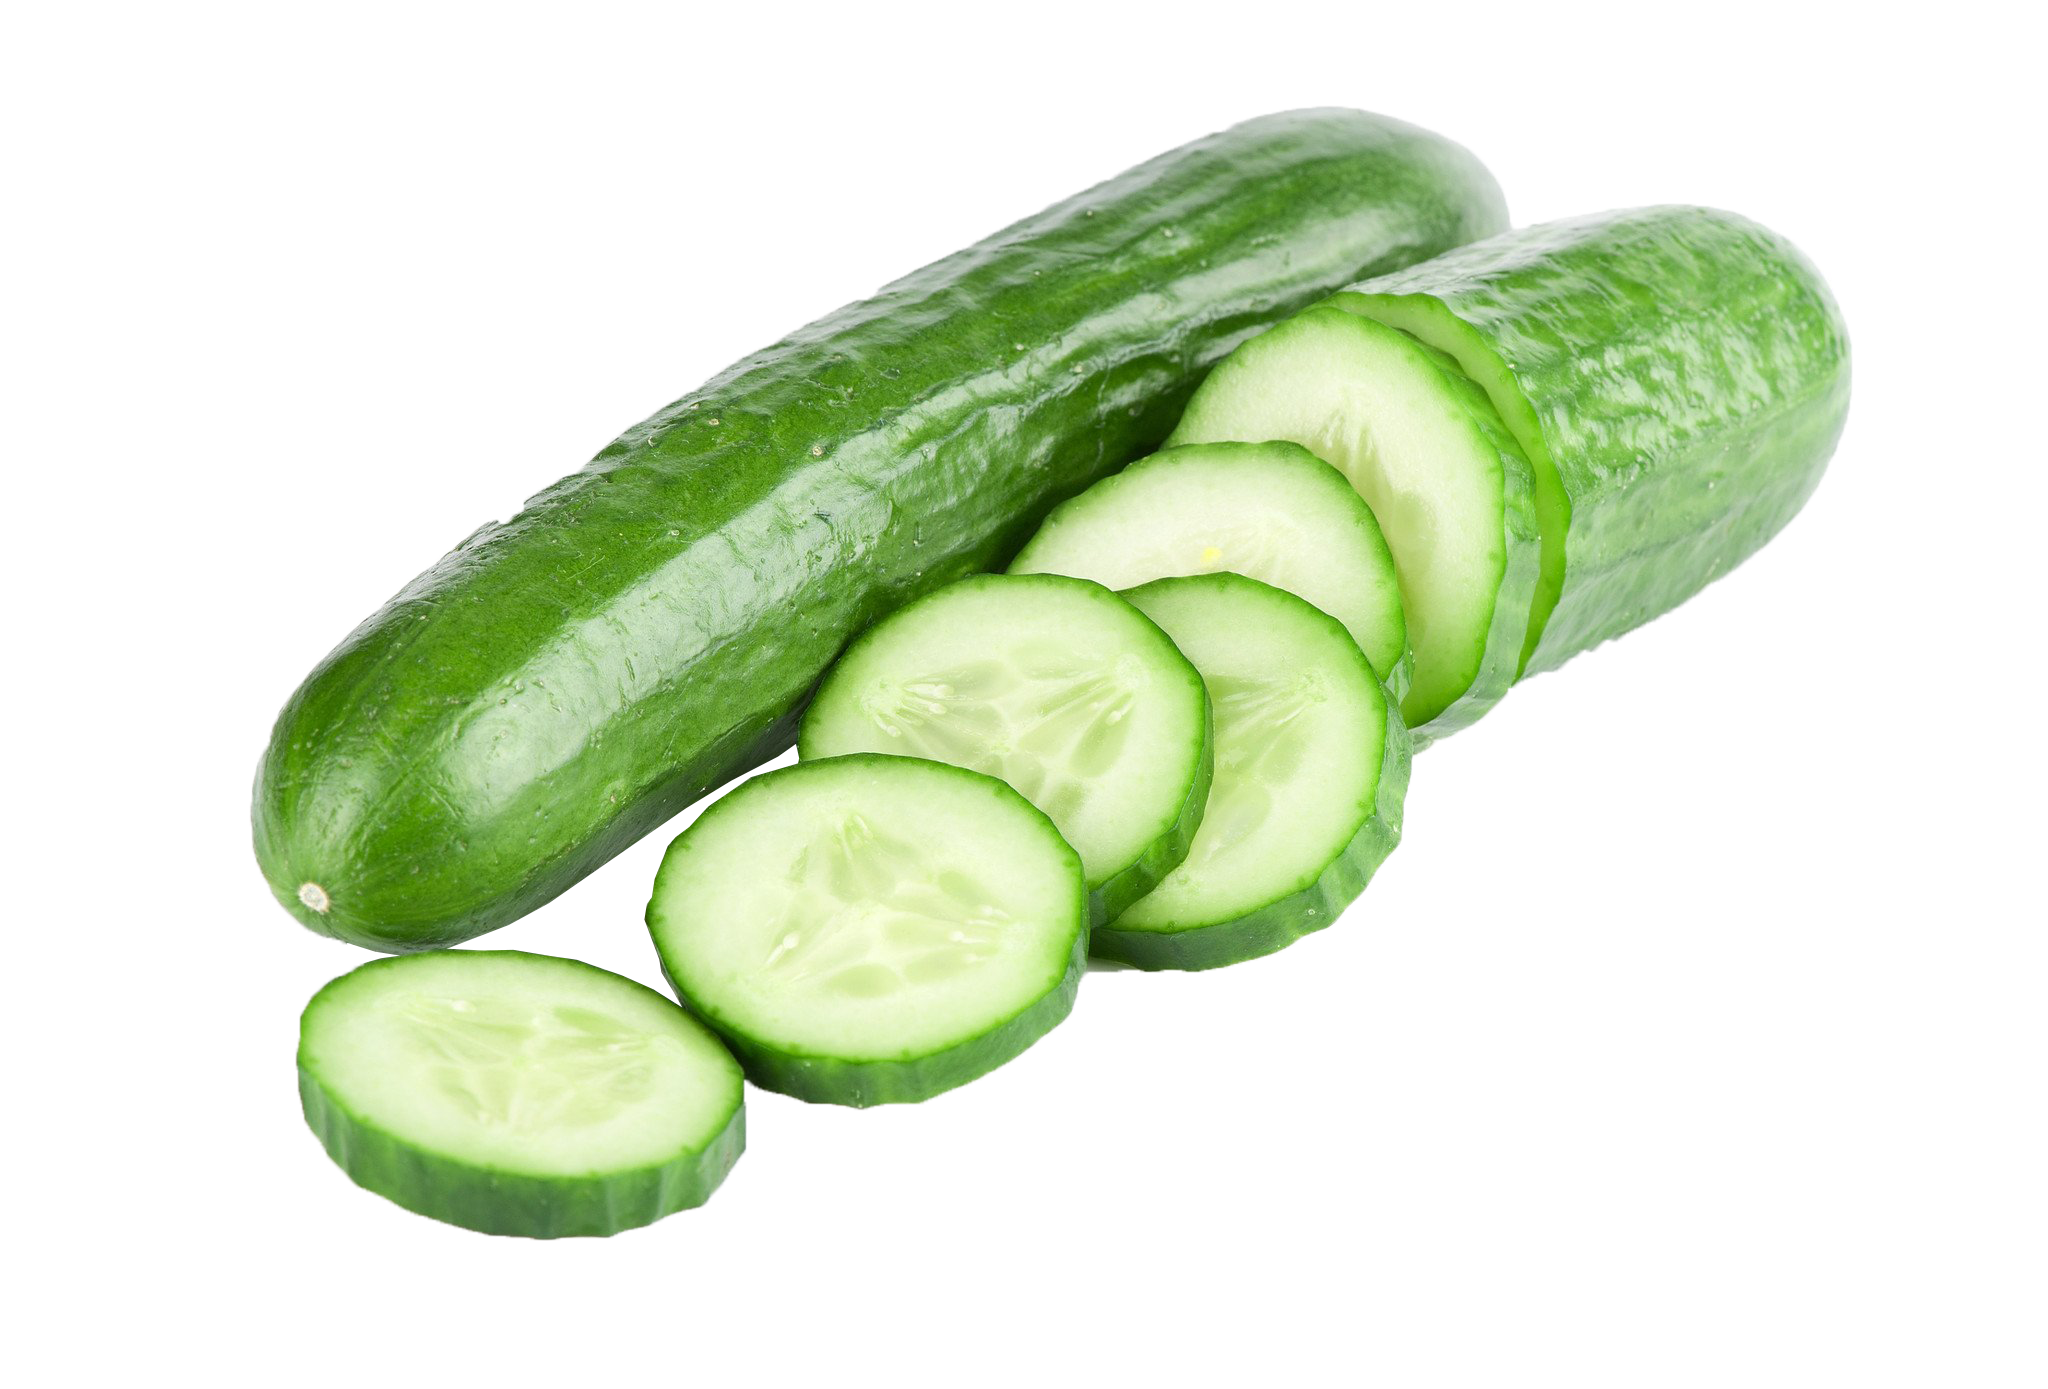 Cucumber PNG, Cucumber Slice, Cucumber Clipart Free Download.